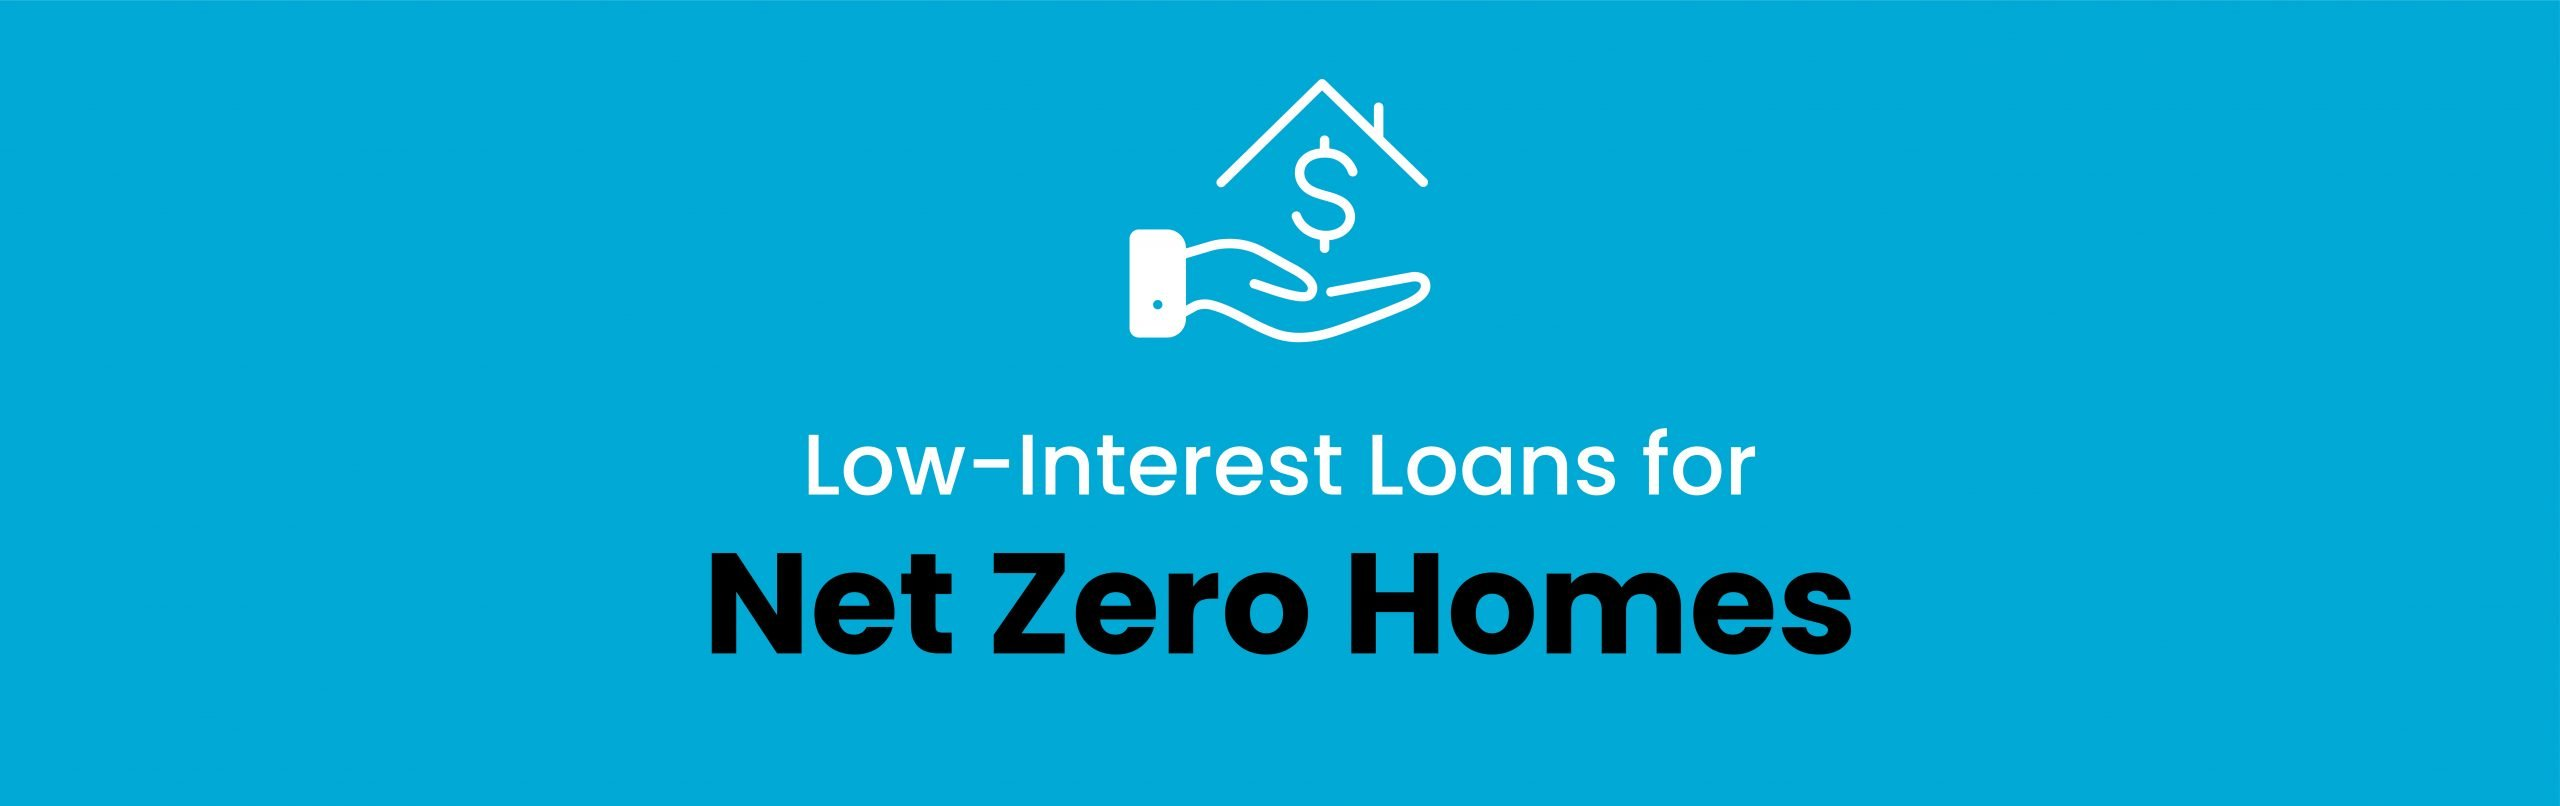 Low-interest loans for net Zero Homes